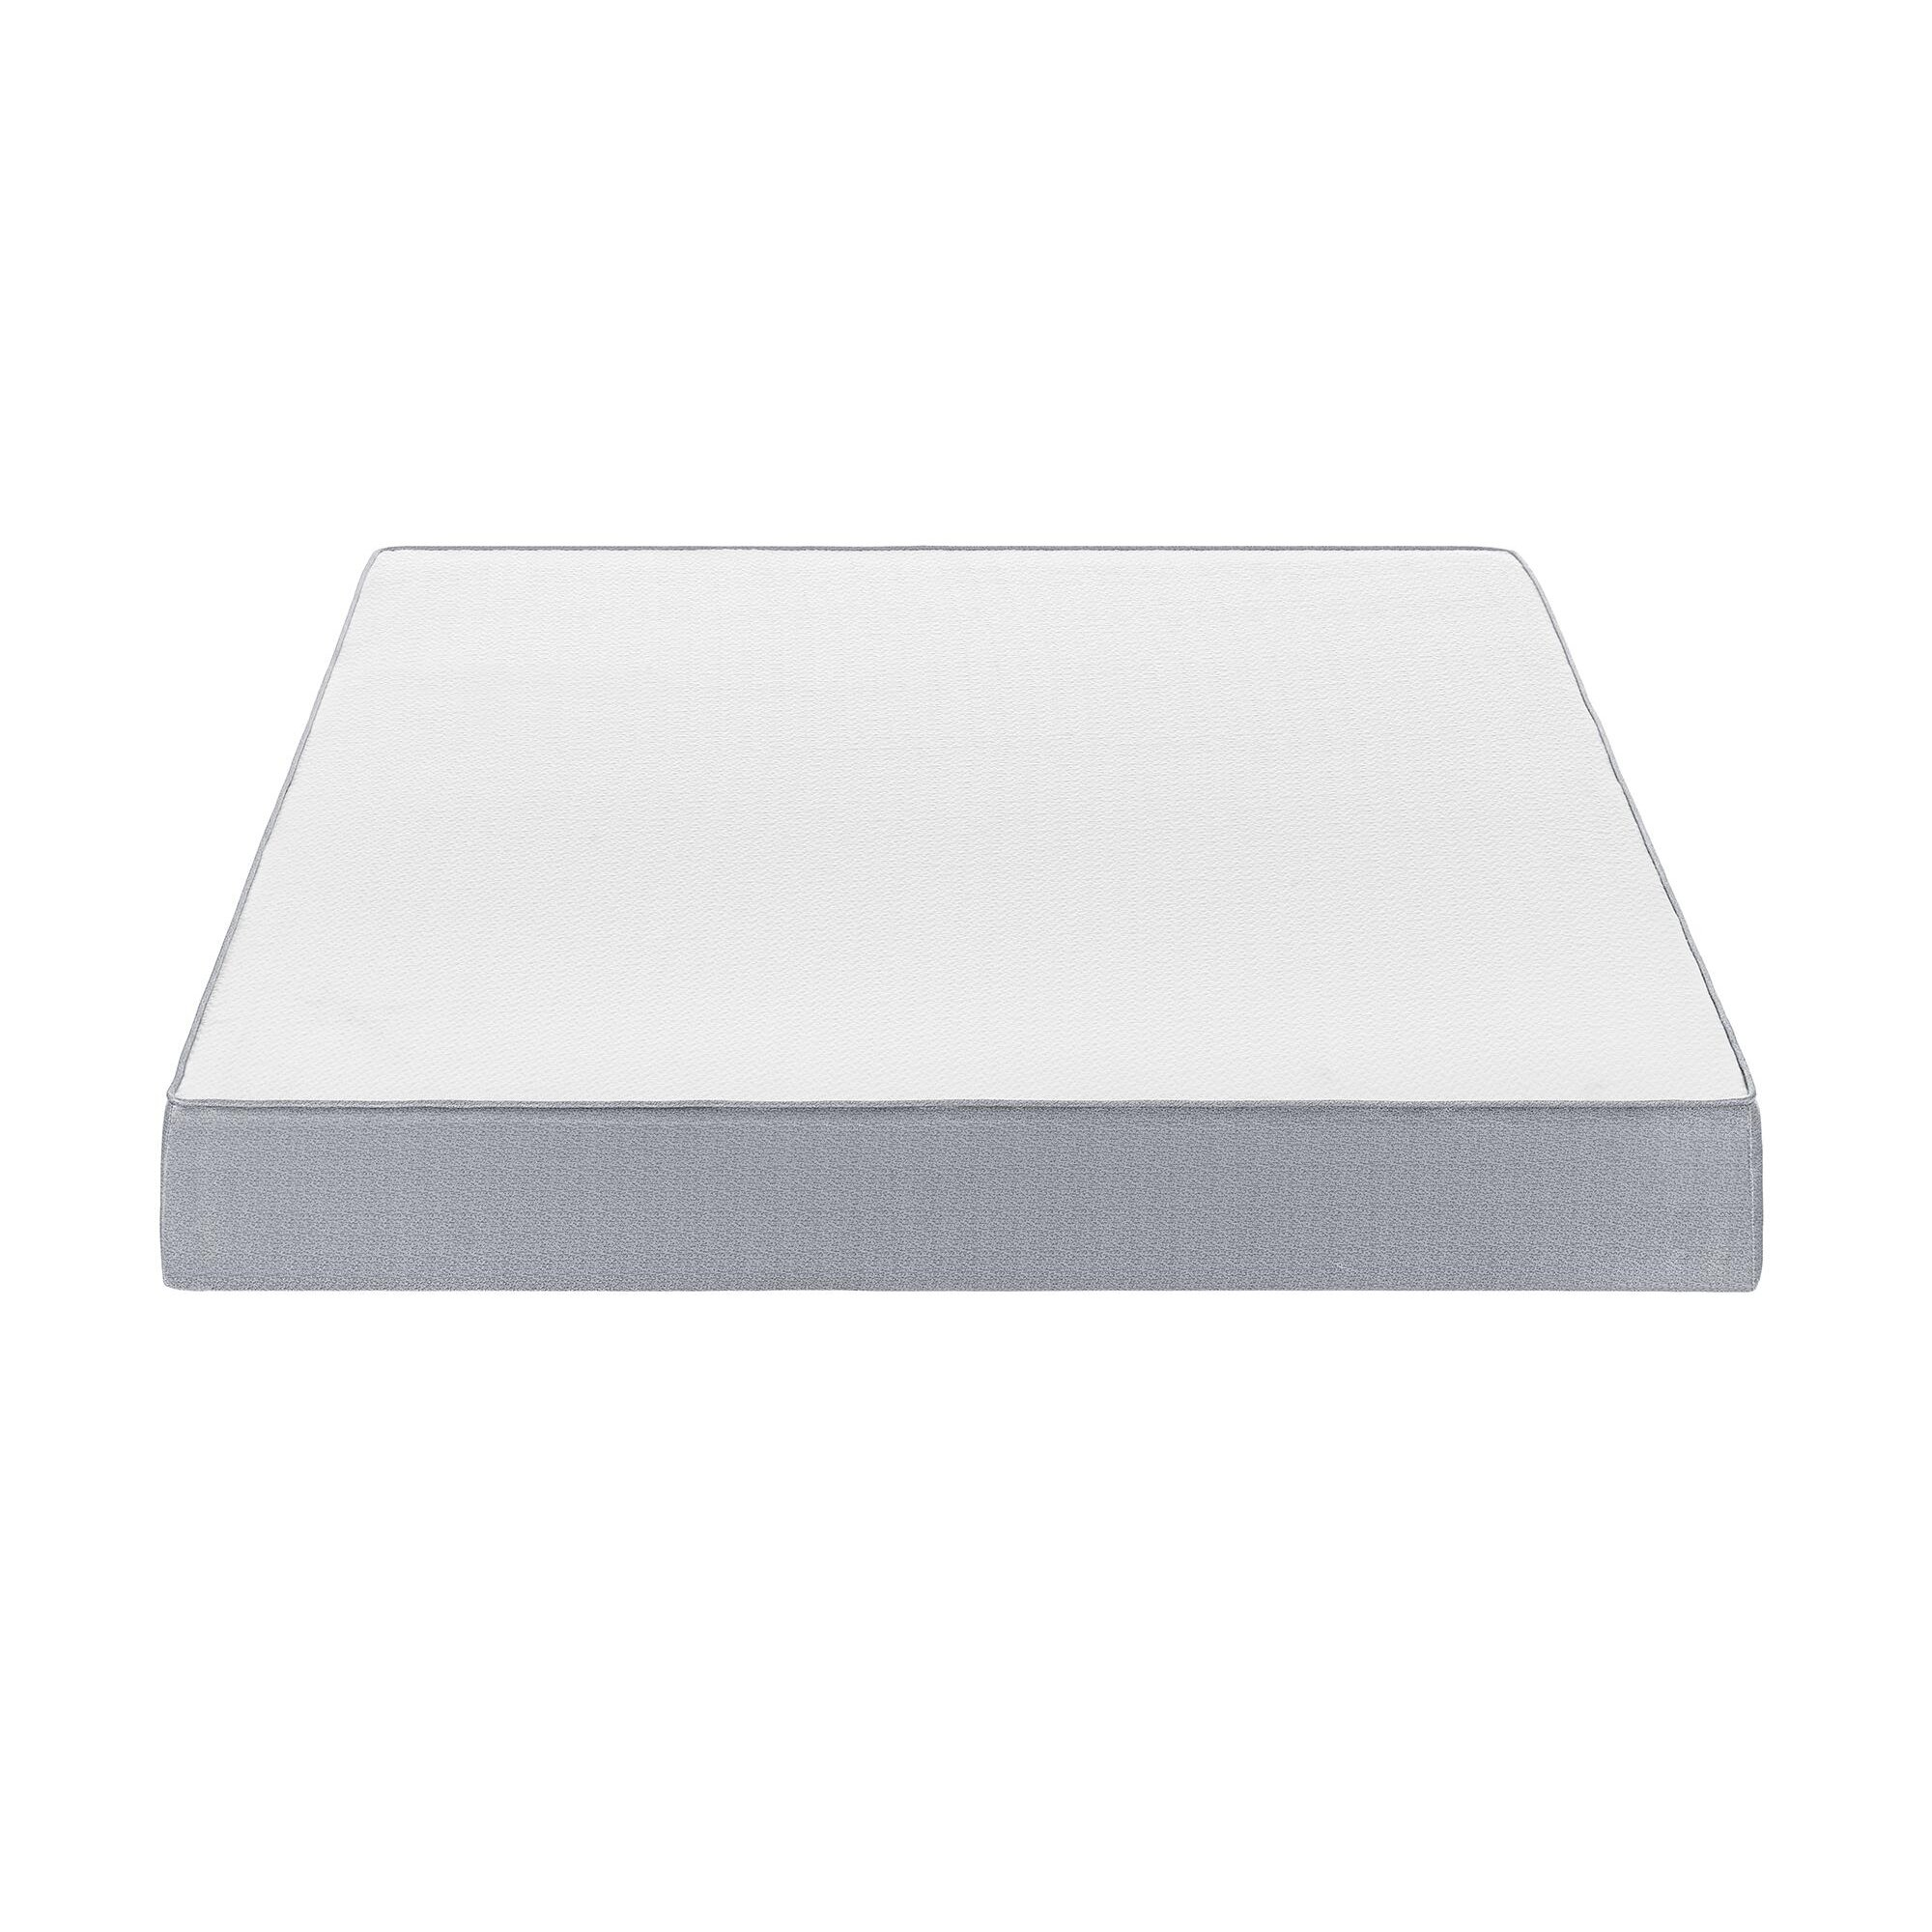 Anew edit 7 medium memory foam mattress reviews Mattress sale memory foam